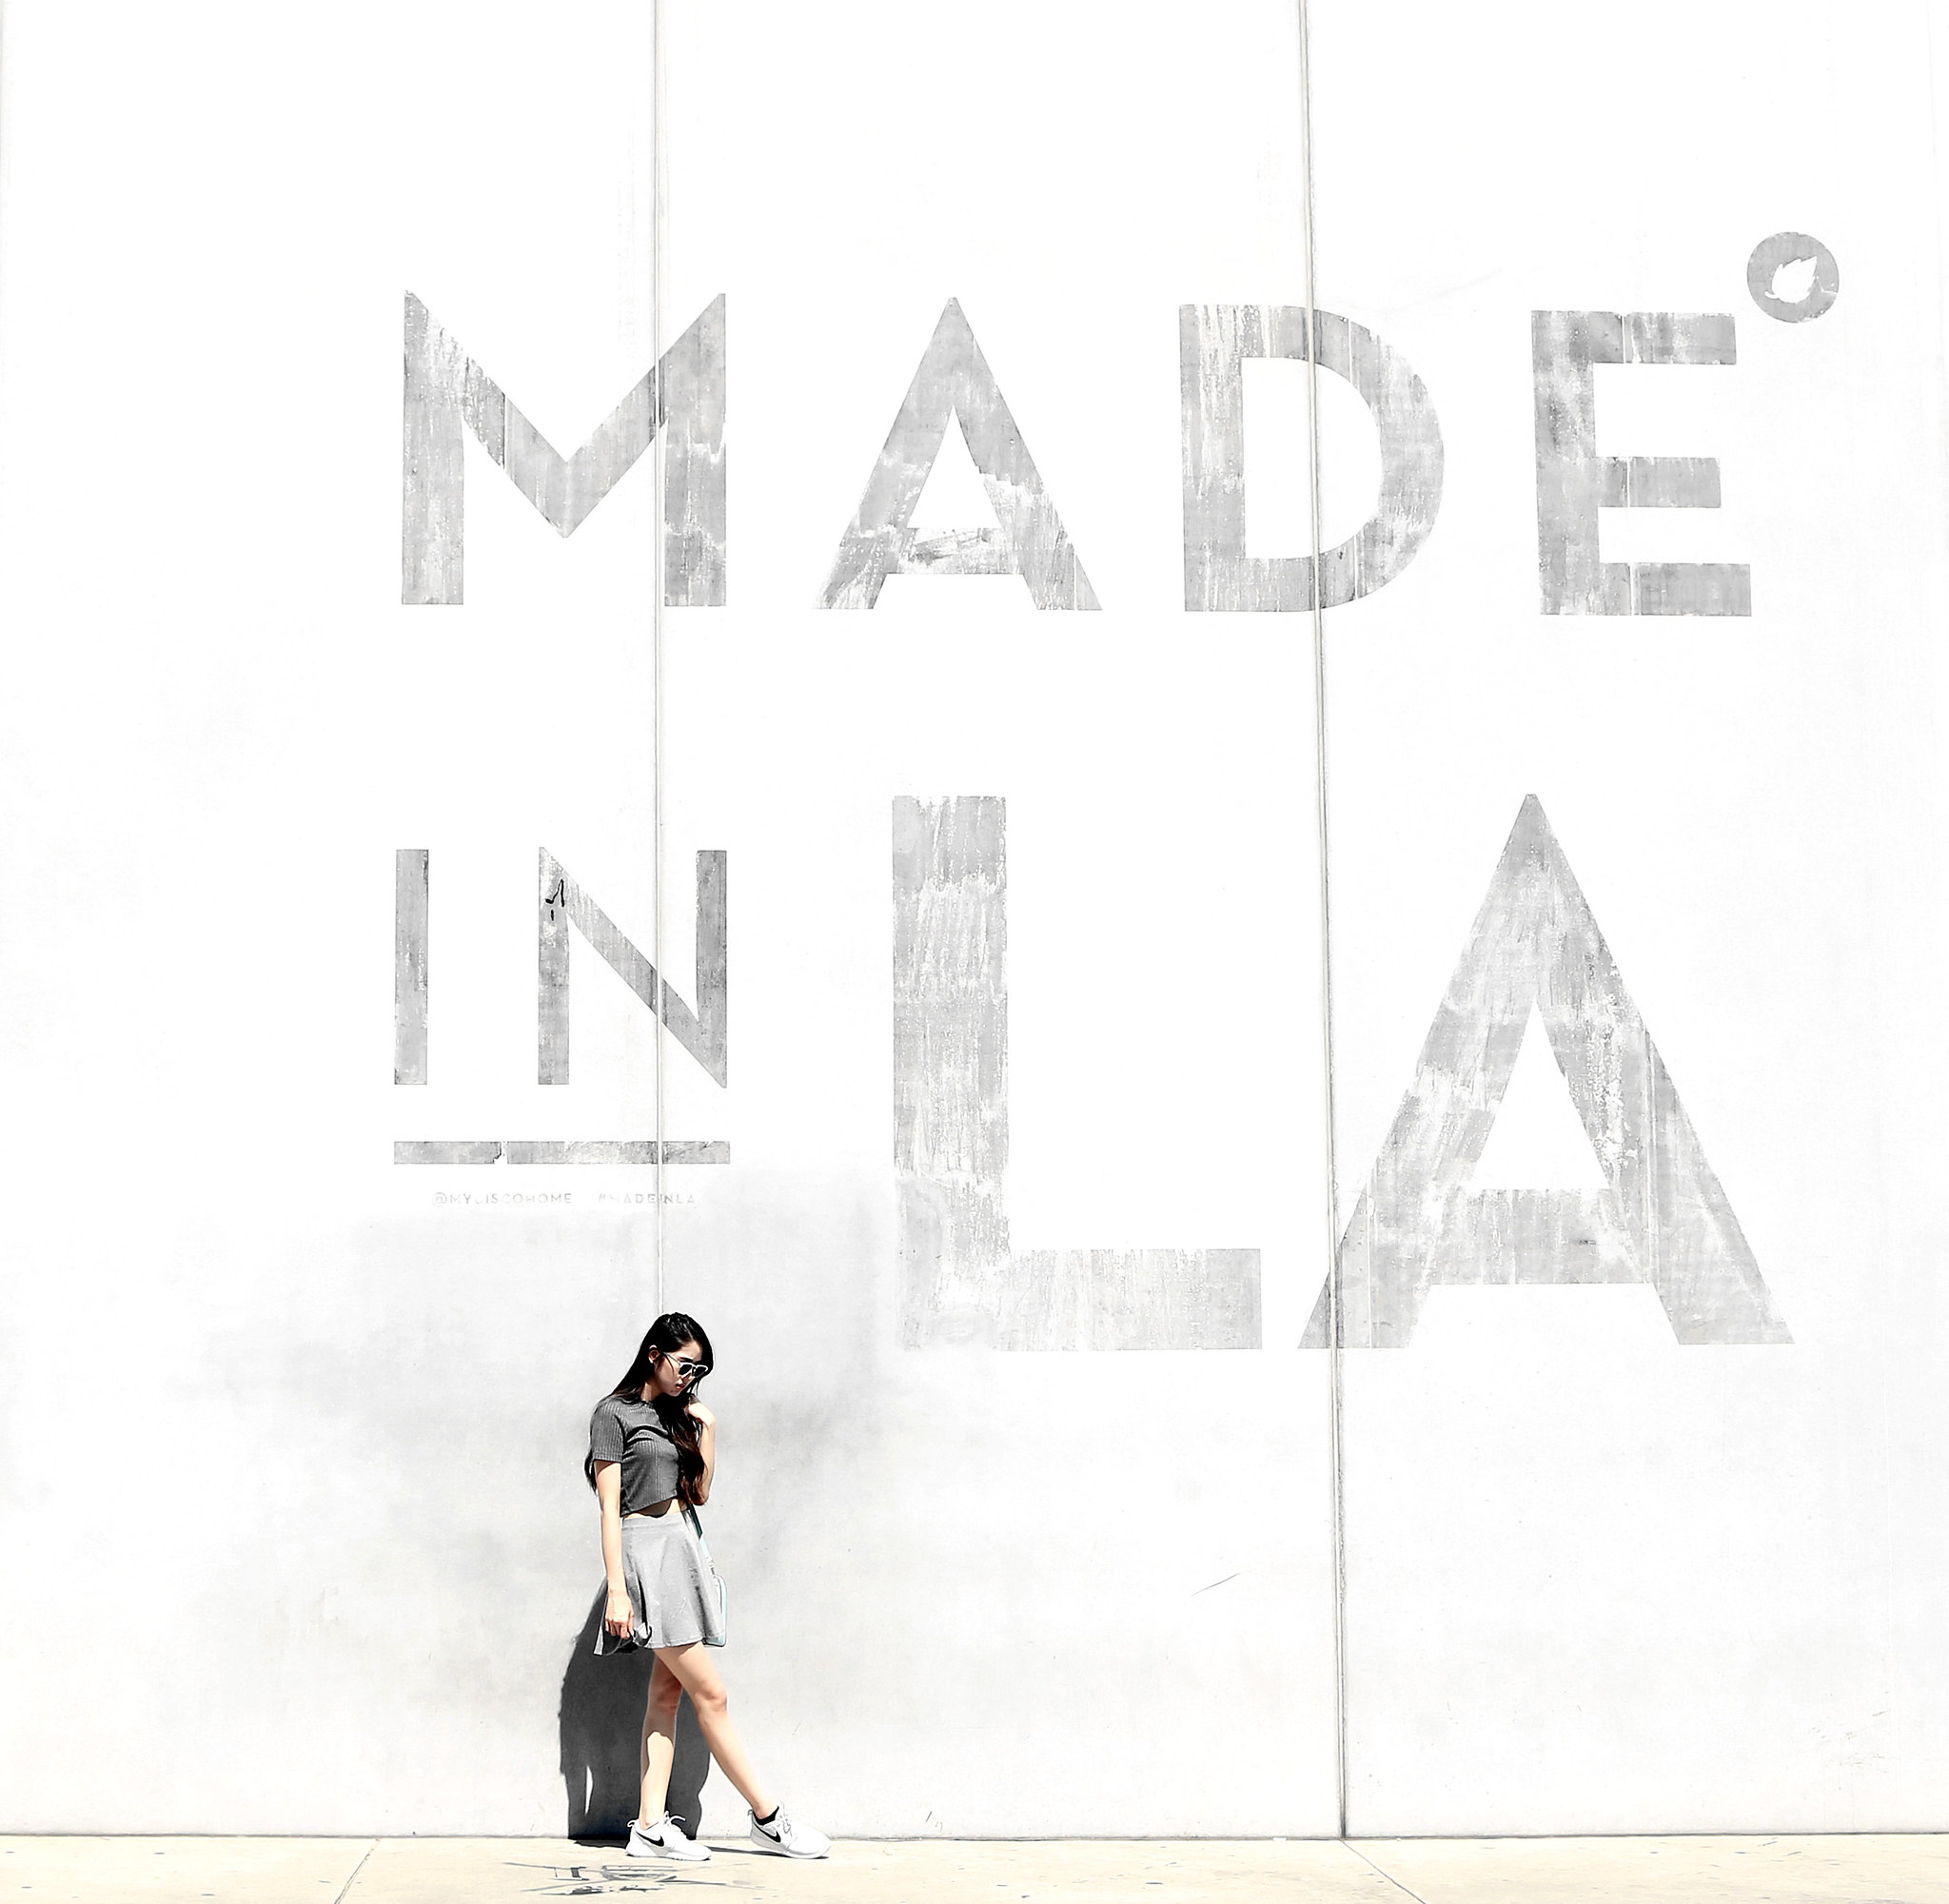 0315-made-in-la-los-angeles-dtla-hipster-wall-art-sporty-chic-lifestyle